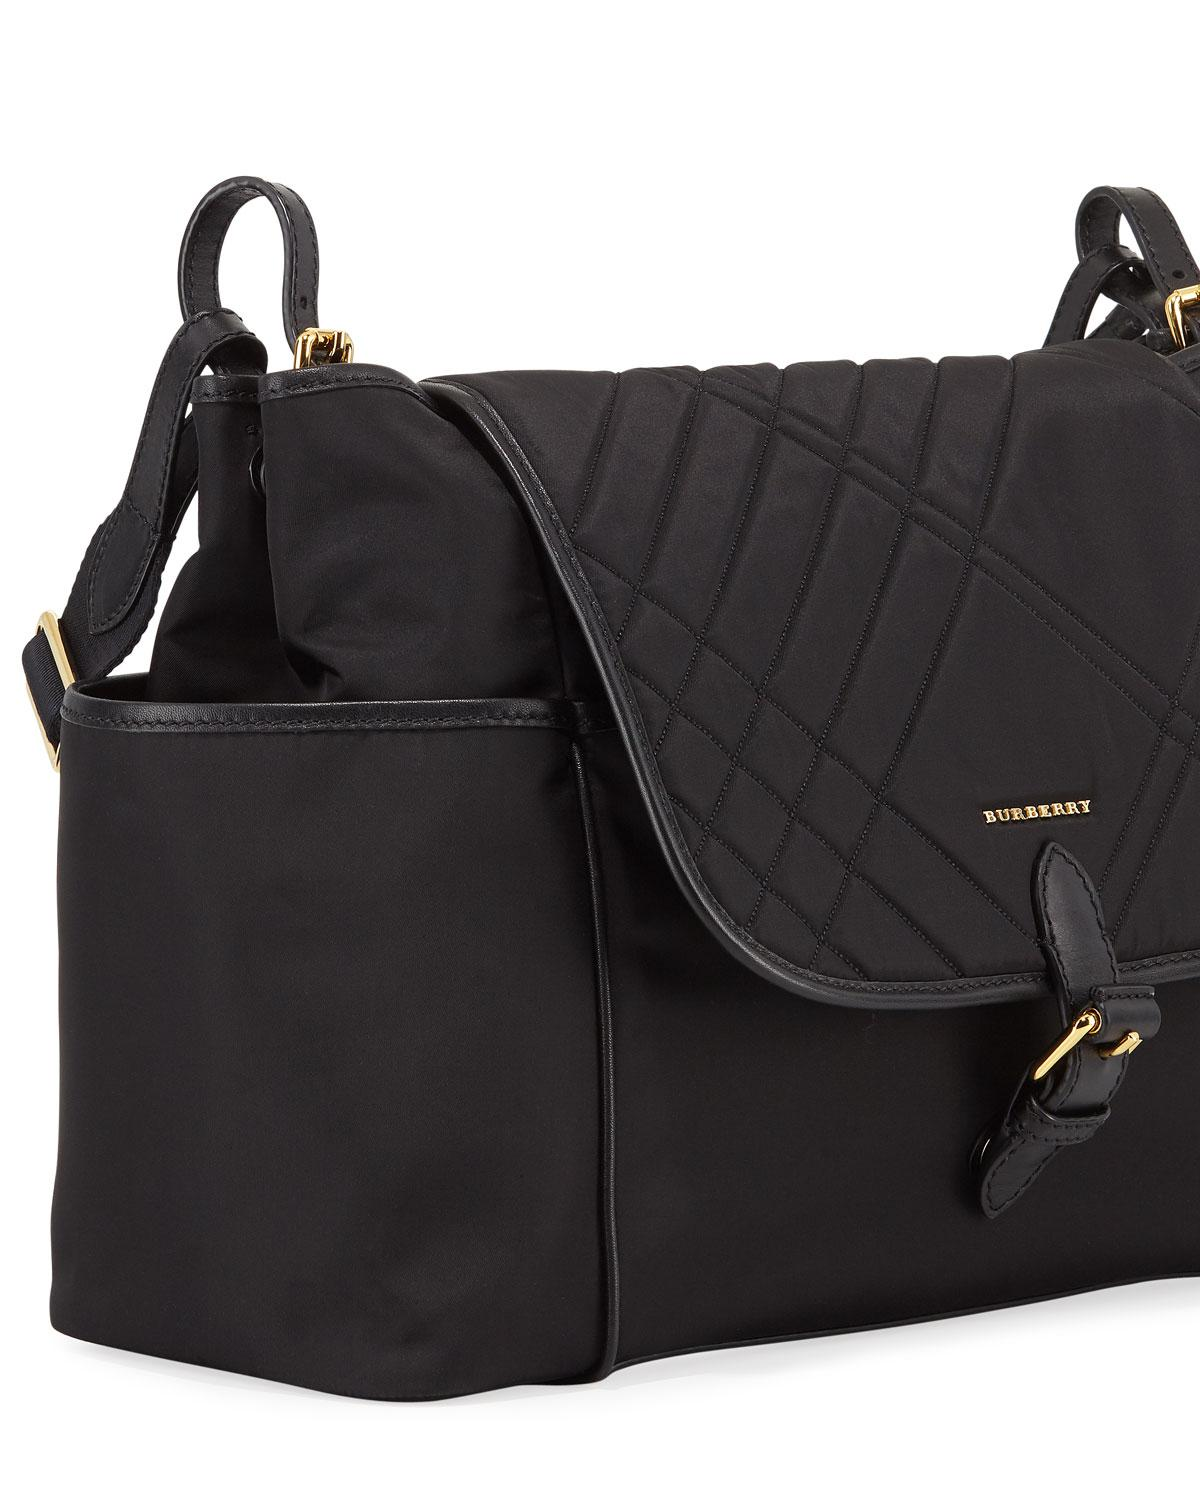 7aa383bfecea Lyst - Burberry Flap-top Quilted Diaper Bag in Black